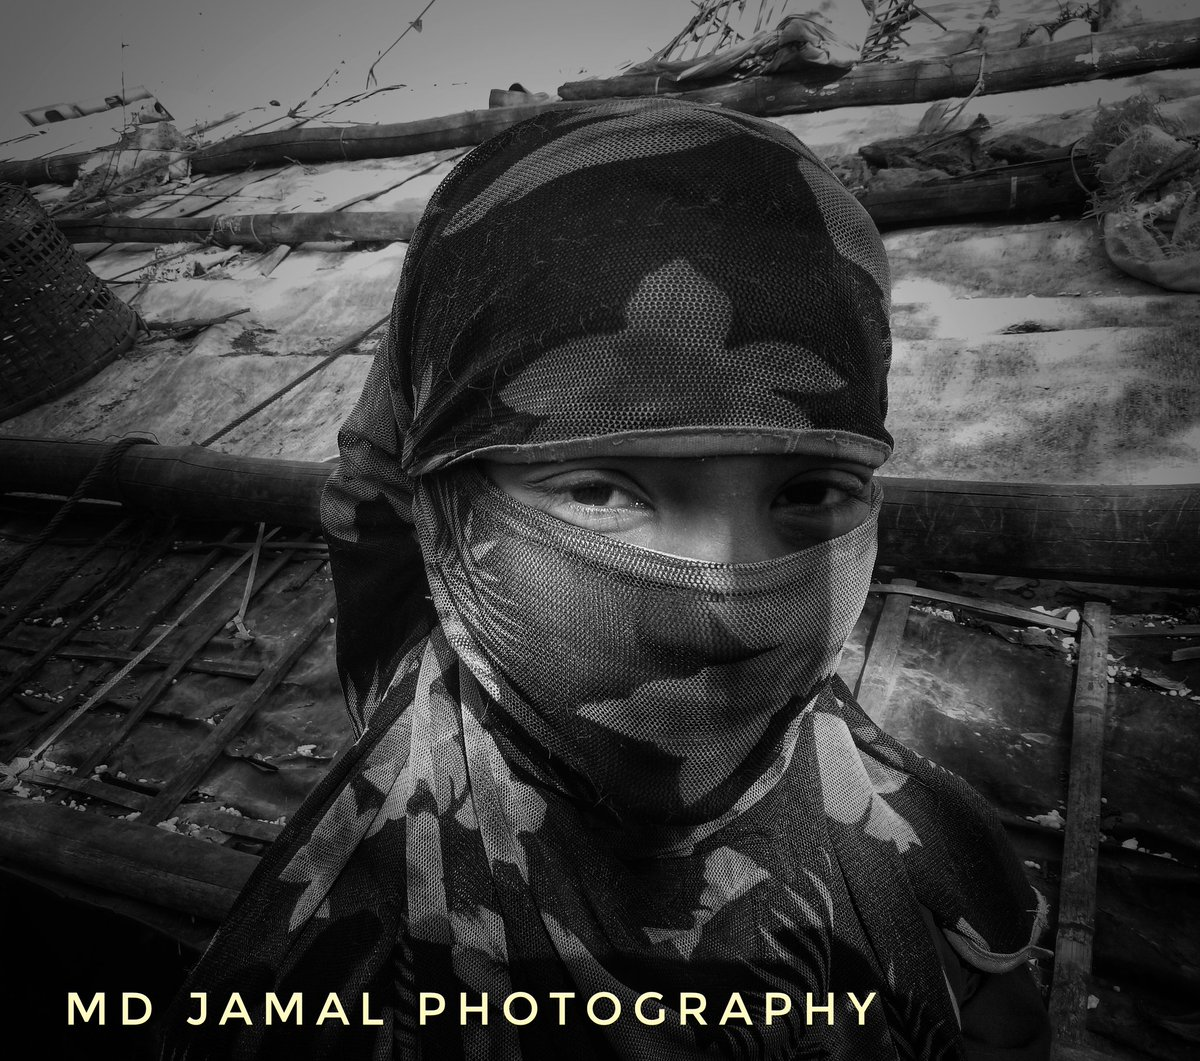 My #photography in the world Looking for peacei Kutupalong #Rohingya  #Refugee  Camp Cox's Bazar in Bangladesh Date 22 /01/2021 https://t.co/3Mtn7qOfYZ